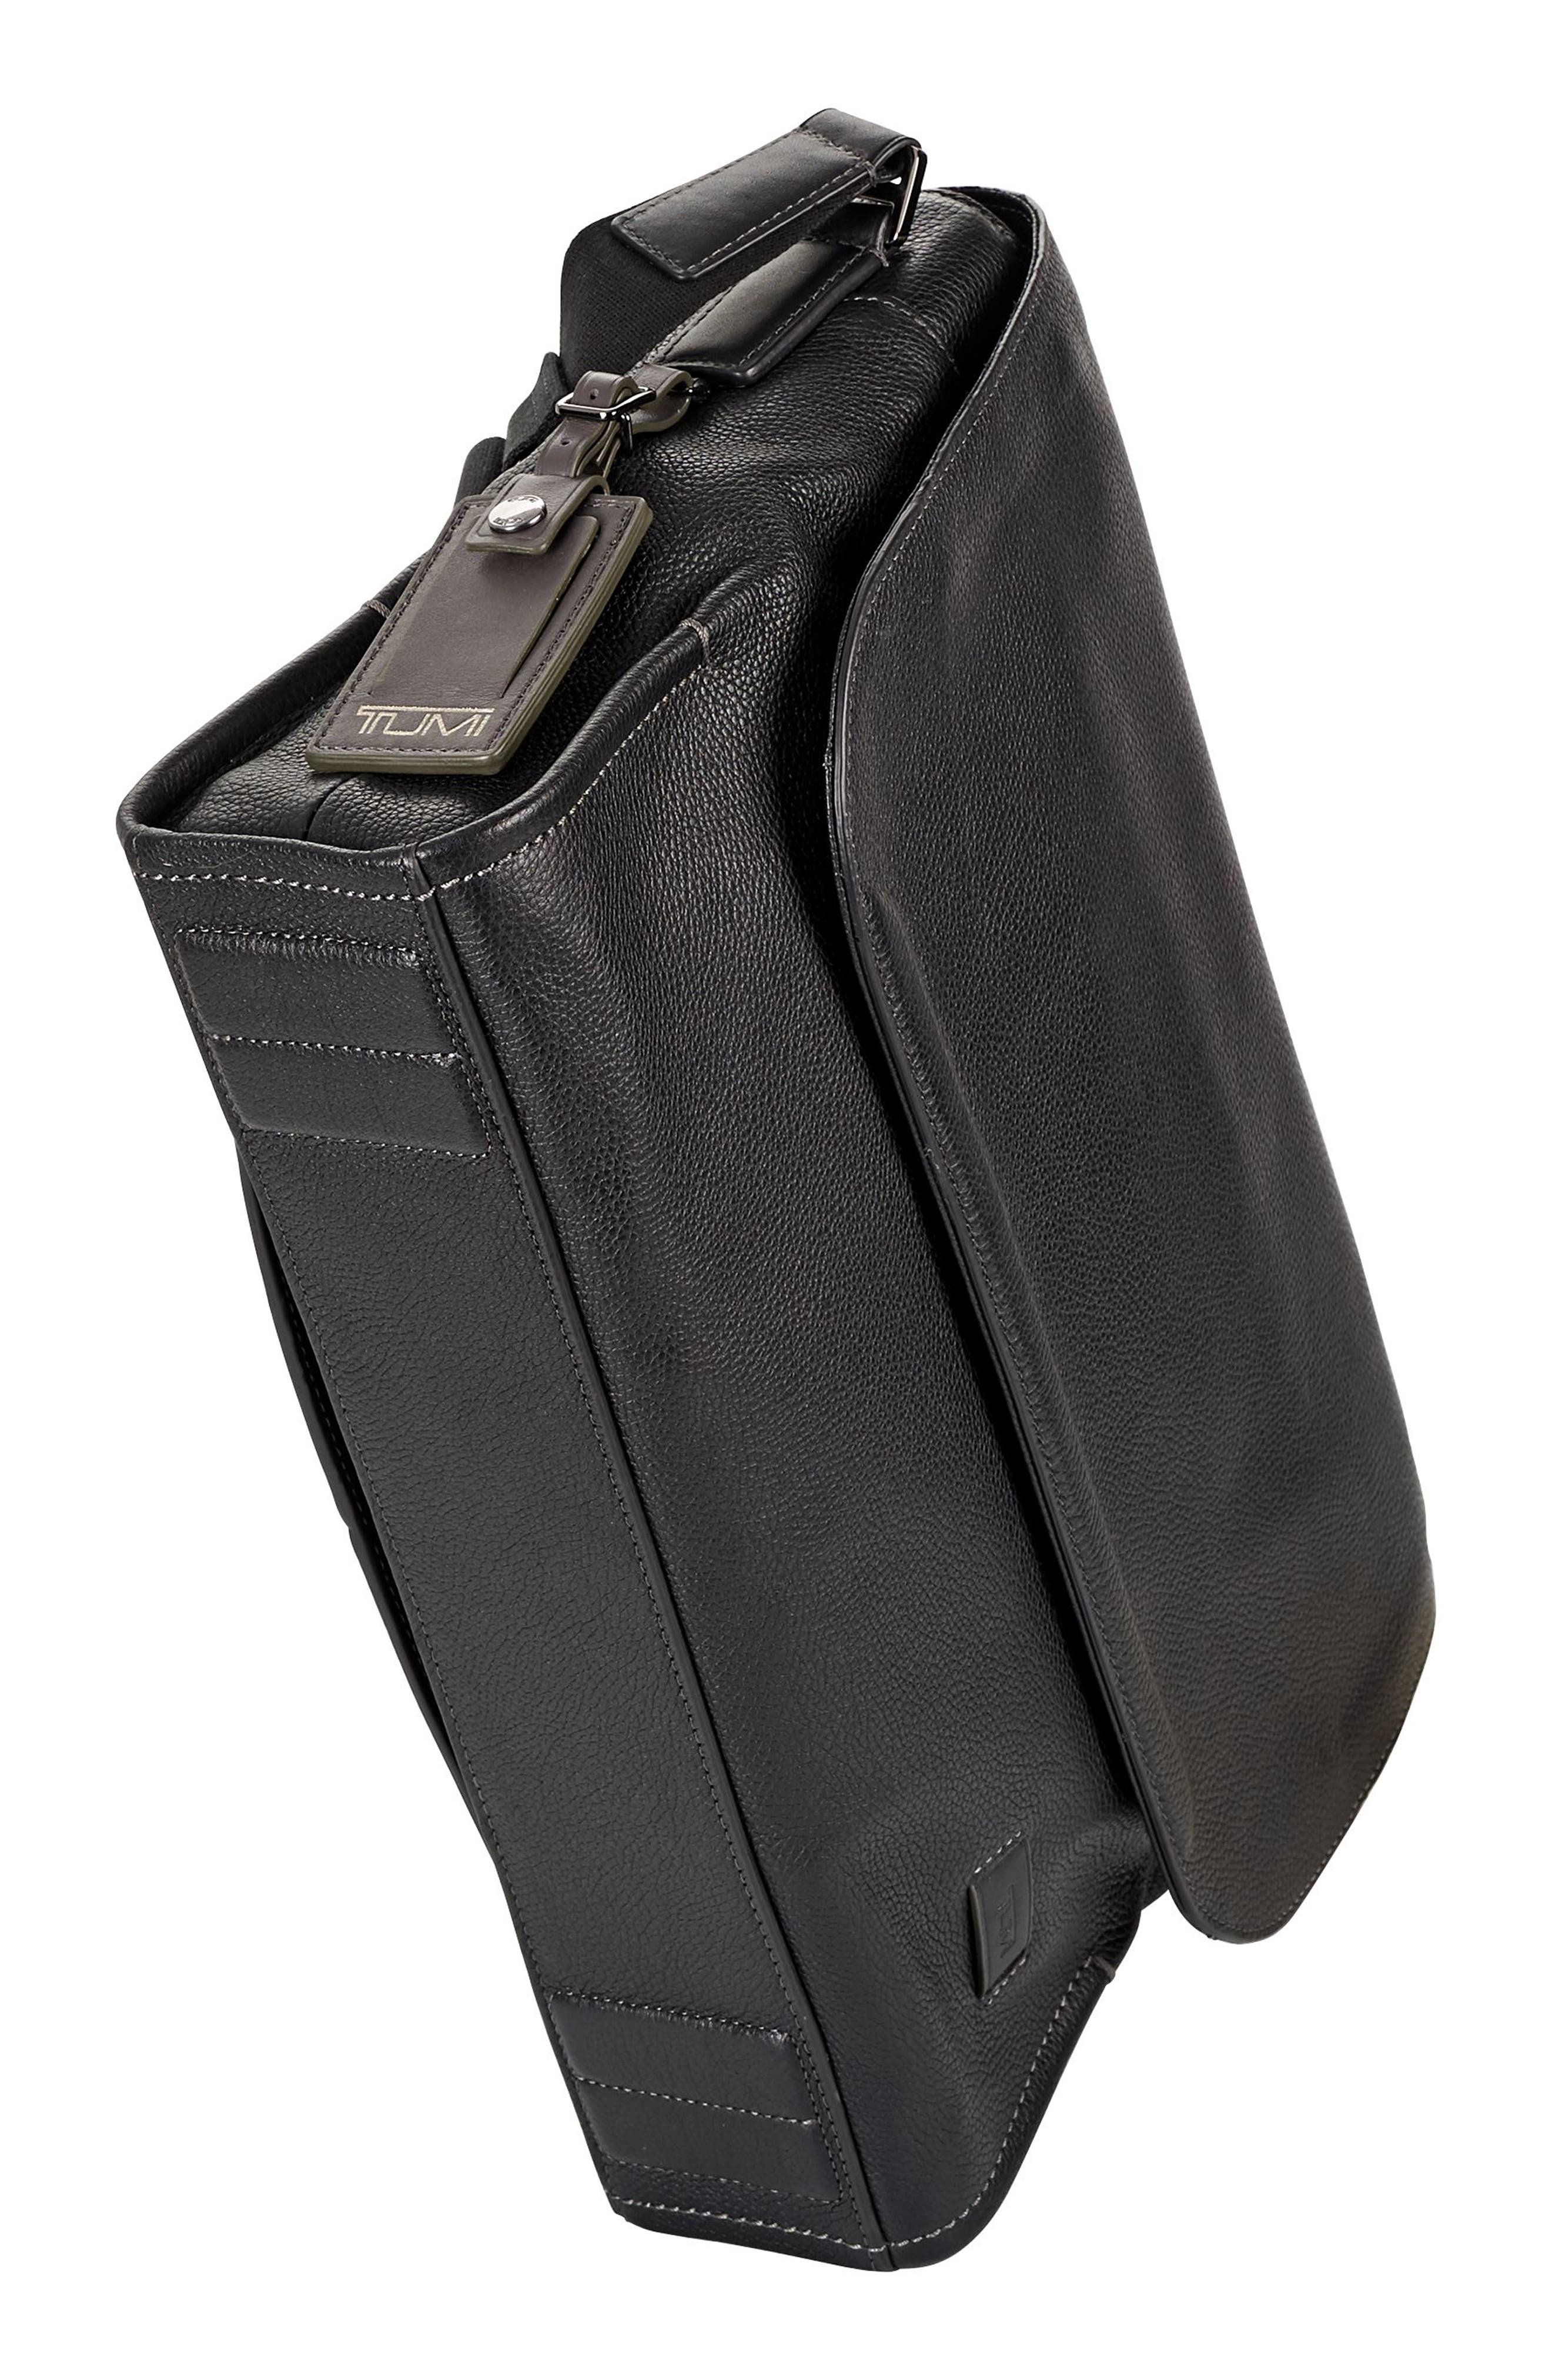 Harrison - Mathews Messenger Bag,                             Alternate thumbnail 5, color,                             Black